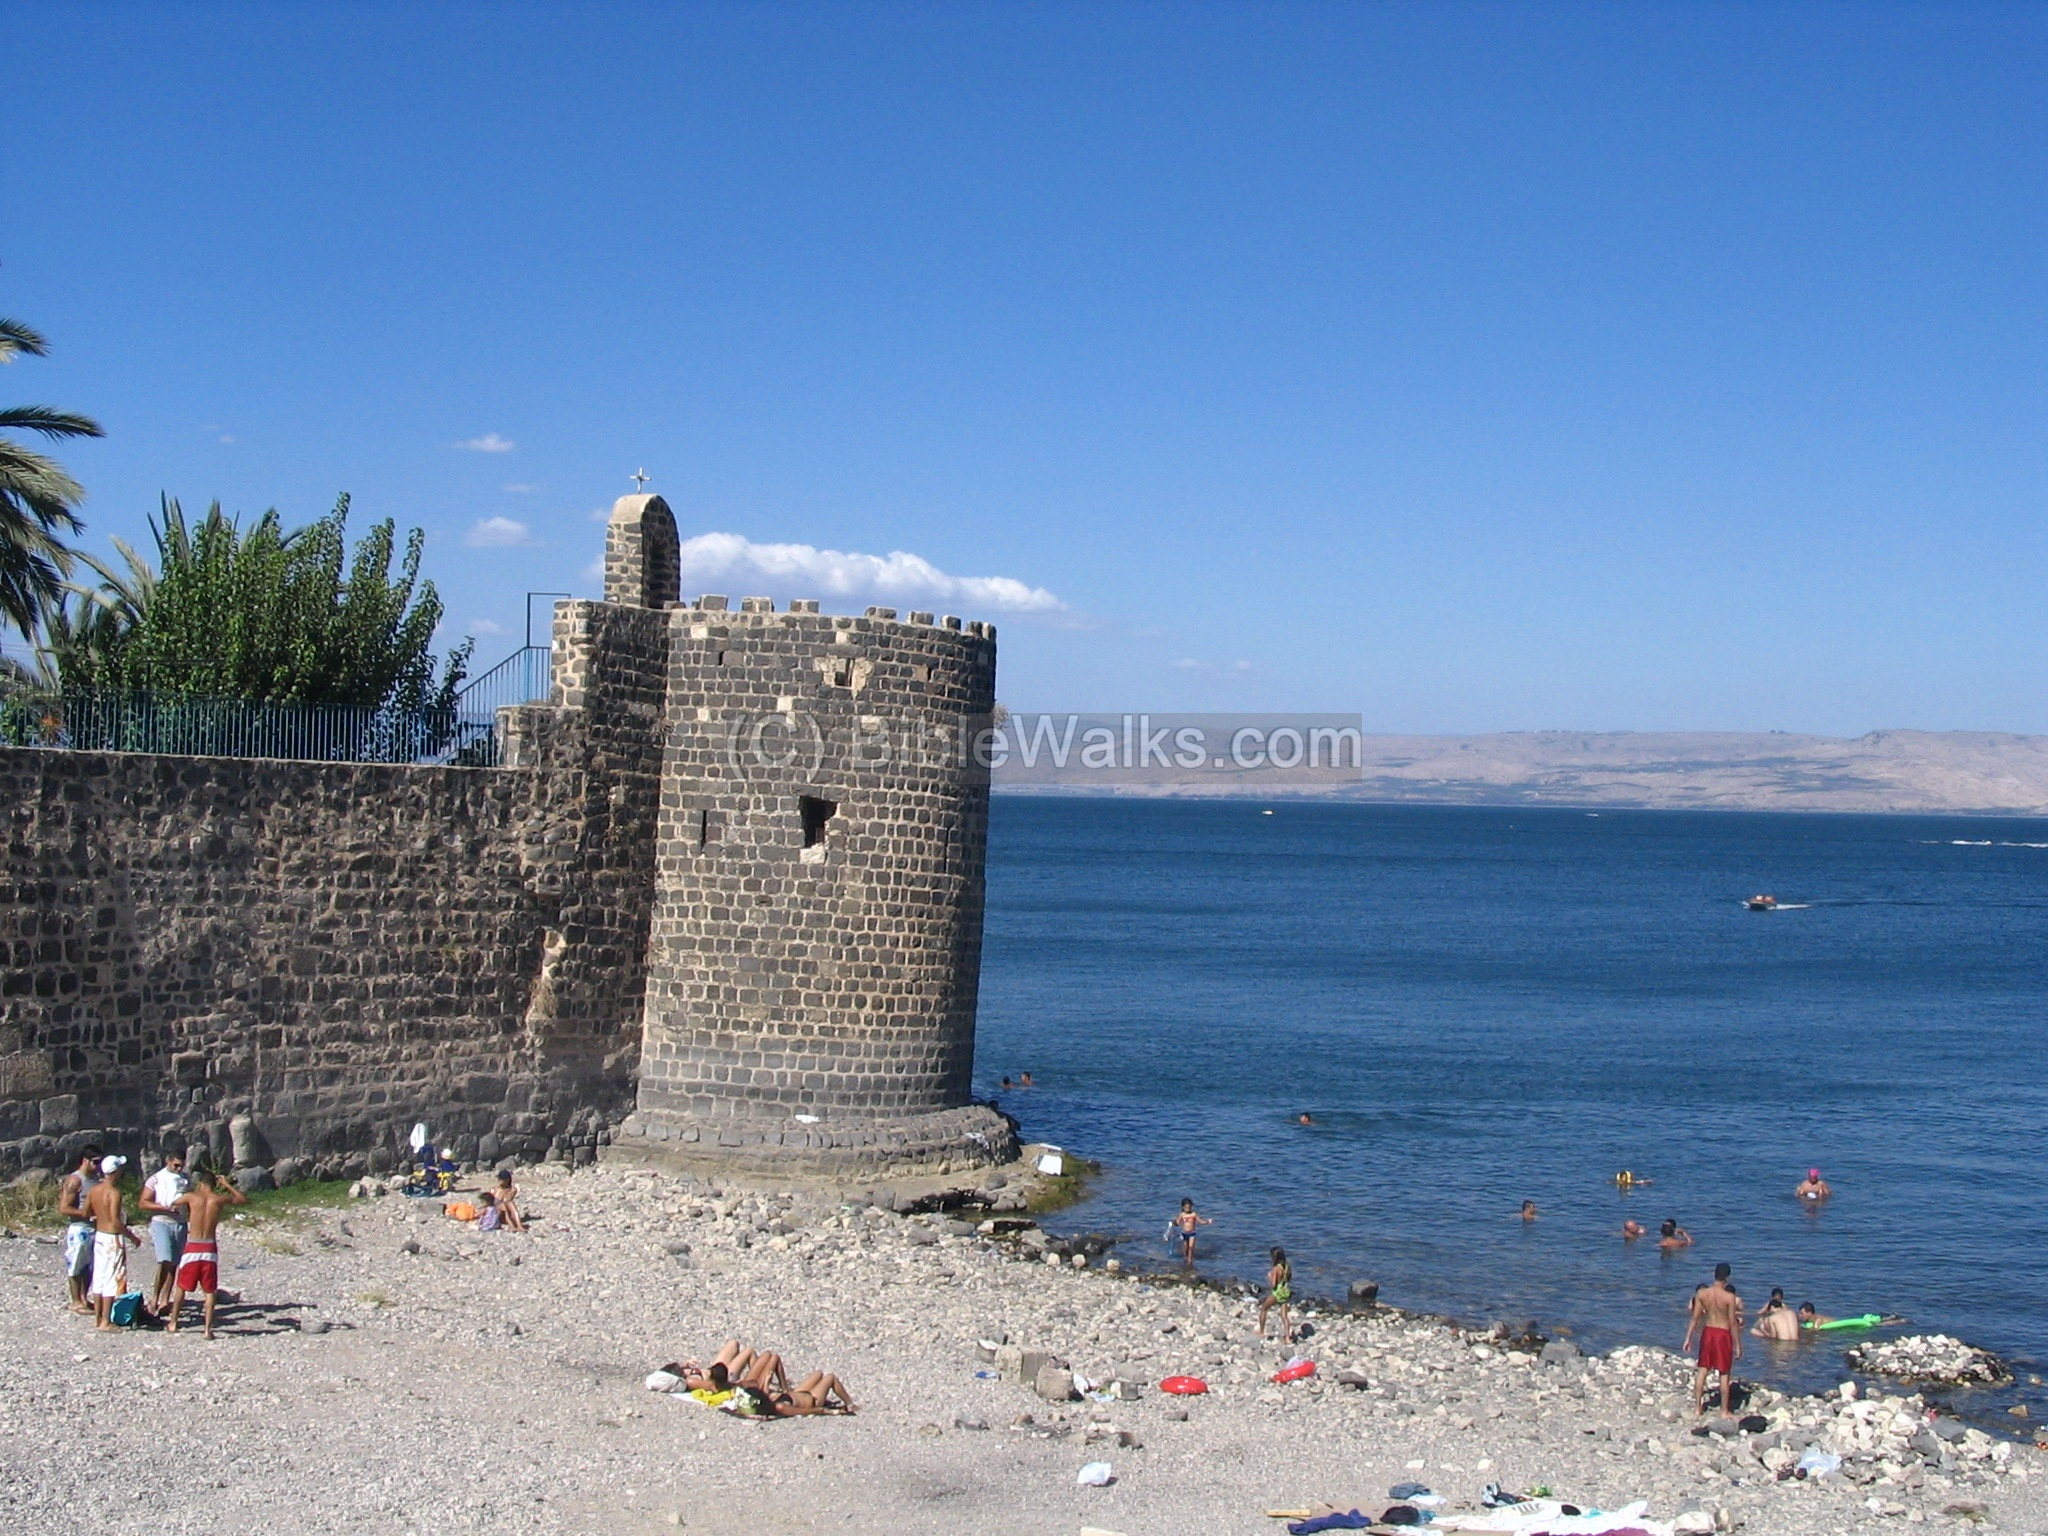 Tiberias, city of the Sea of Galilee